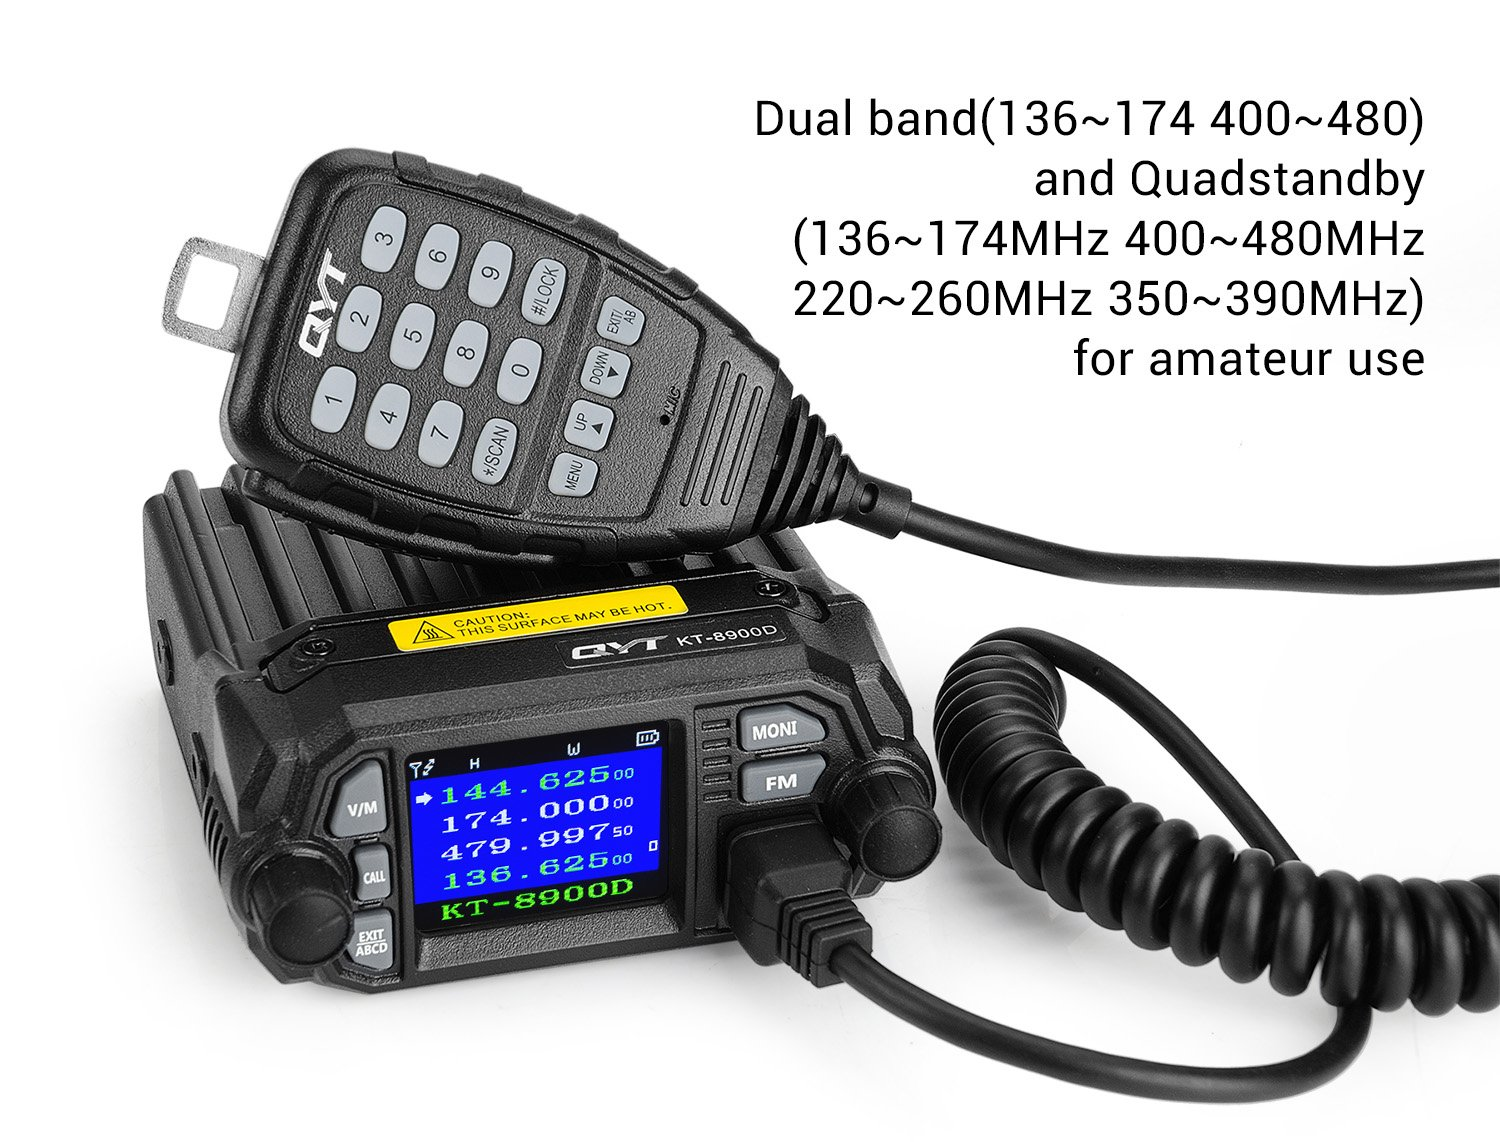 Qyt Kt 8900d 25w Dual Band Mini Mobile Transceiver Two Build Basic Radio Frequency Electronic Circuits Gregs Way Radios136174 400480mhz Quadstandby Amateur Car With Extra Speaker Lightwish Electronics